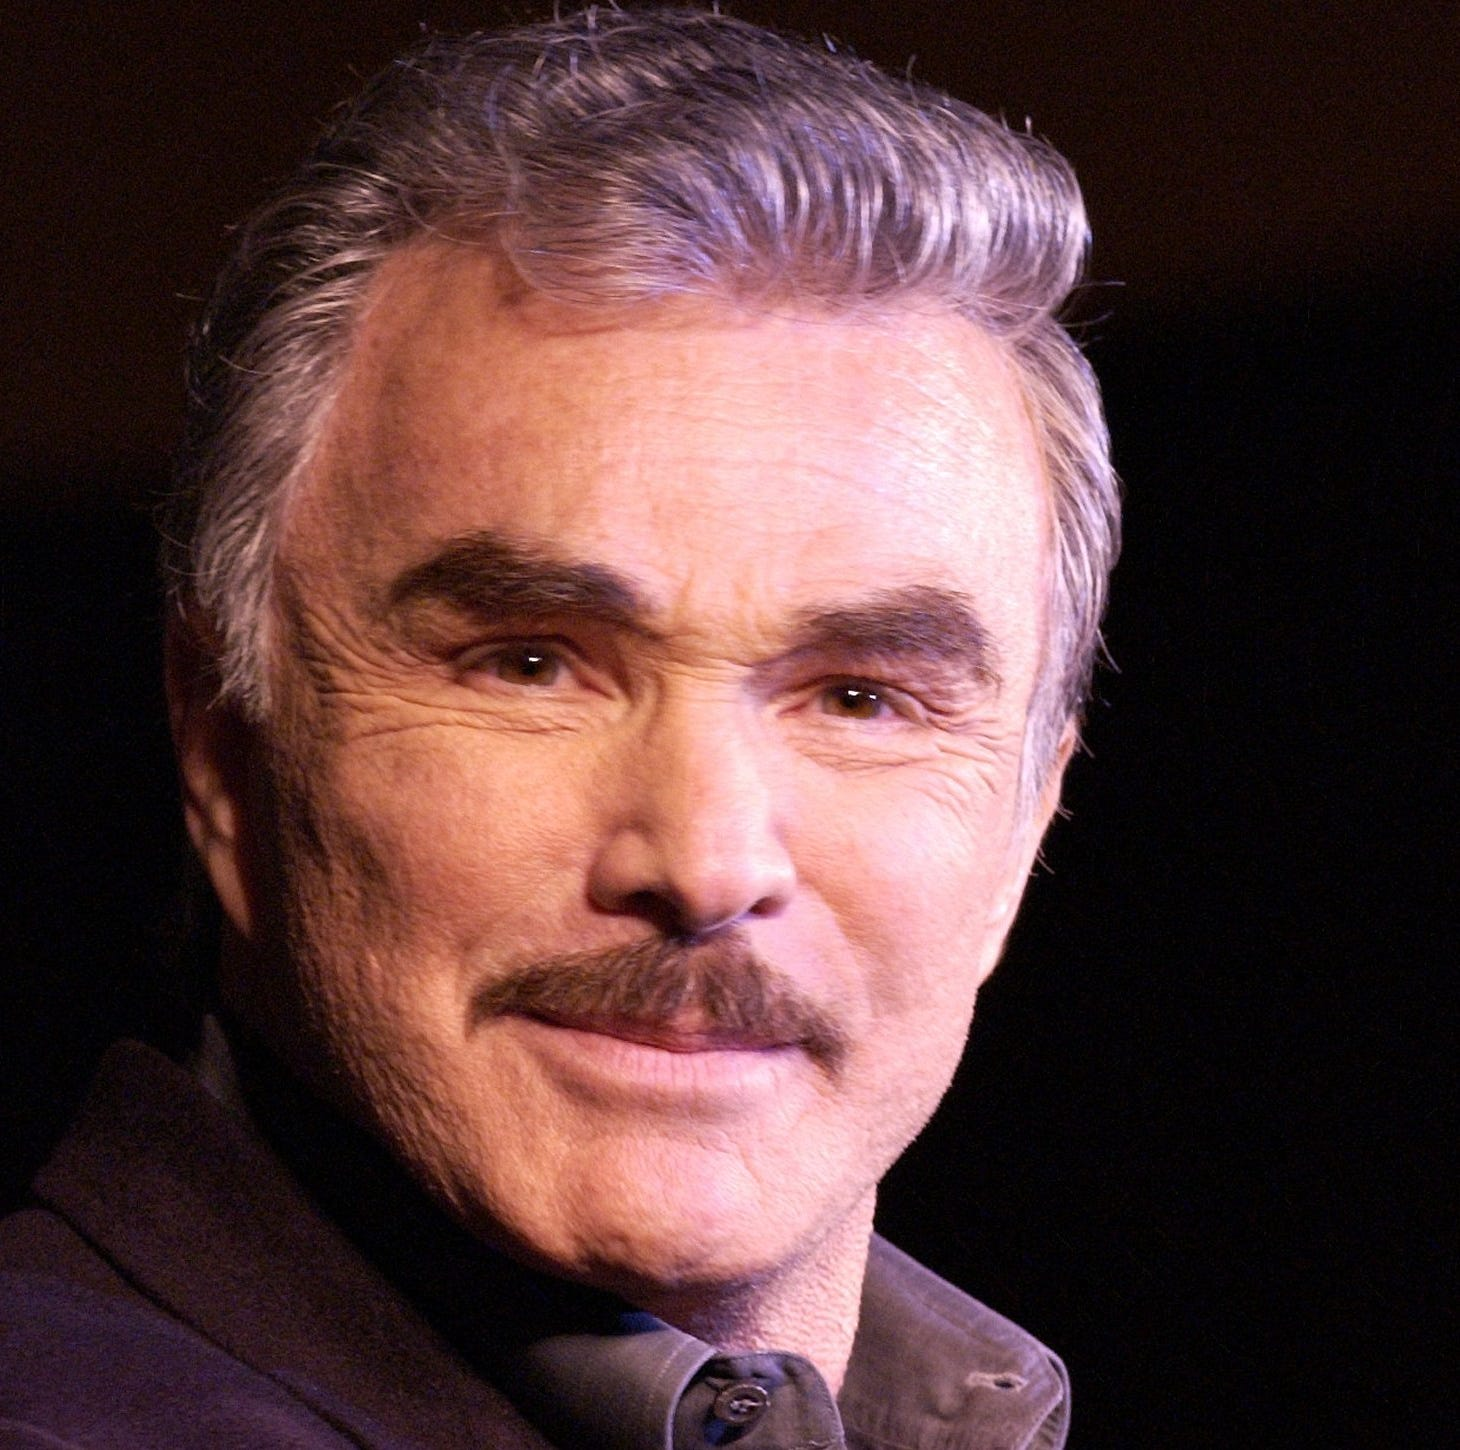 During a 2002 visit to Green Bay, Burt Reynolds shared stories of Ray Nitschke